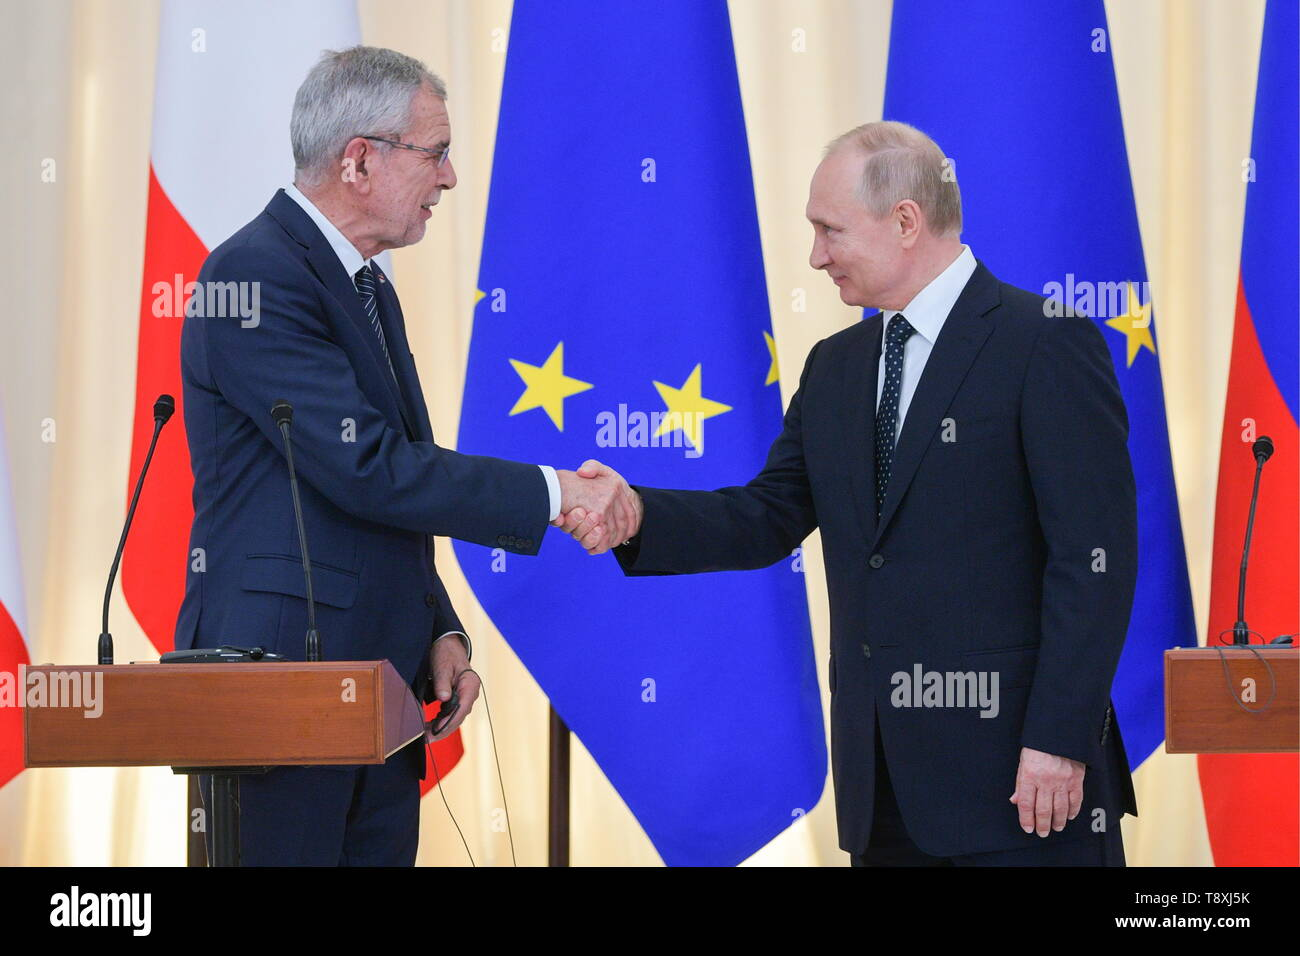 Sochi, Russia. 15th May, 2019. SOCHI, RUSSIA - MAY 15, 2019: Austria's President Alexander Van der Bellen (L) and Russia's President Vladimir Putin shake hands at a joint press conference following their meeting at the Rus health resort. Alexei Druzhinin/Russian Presidential Press and Information Office/TASS Credit: ITAR-TASS News Agency/Alamy Live News - Stock Image